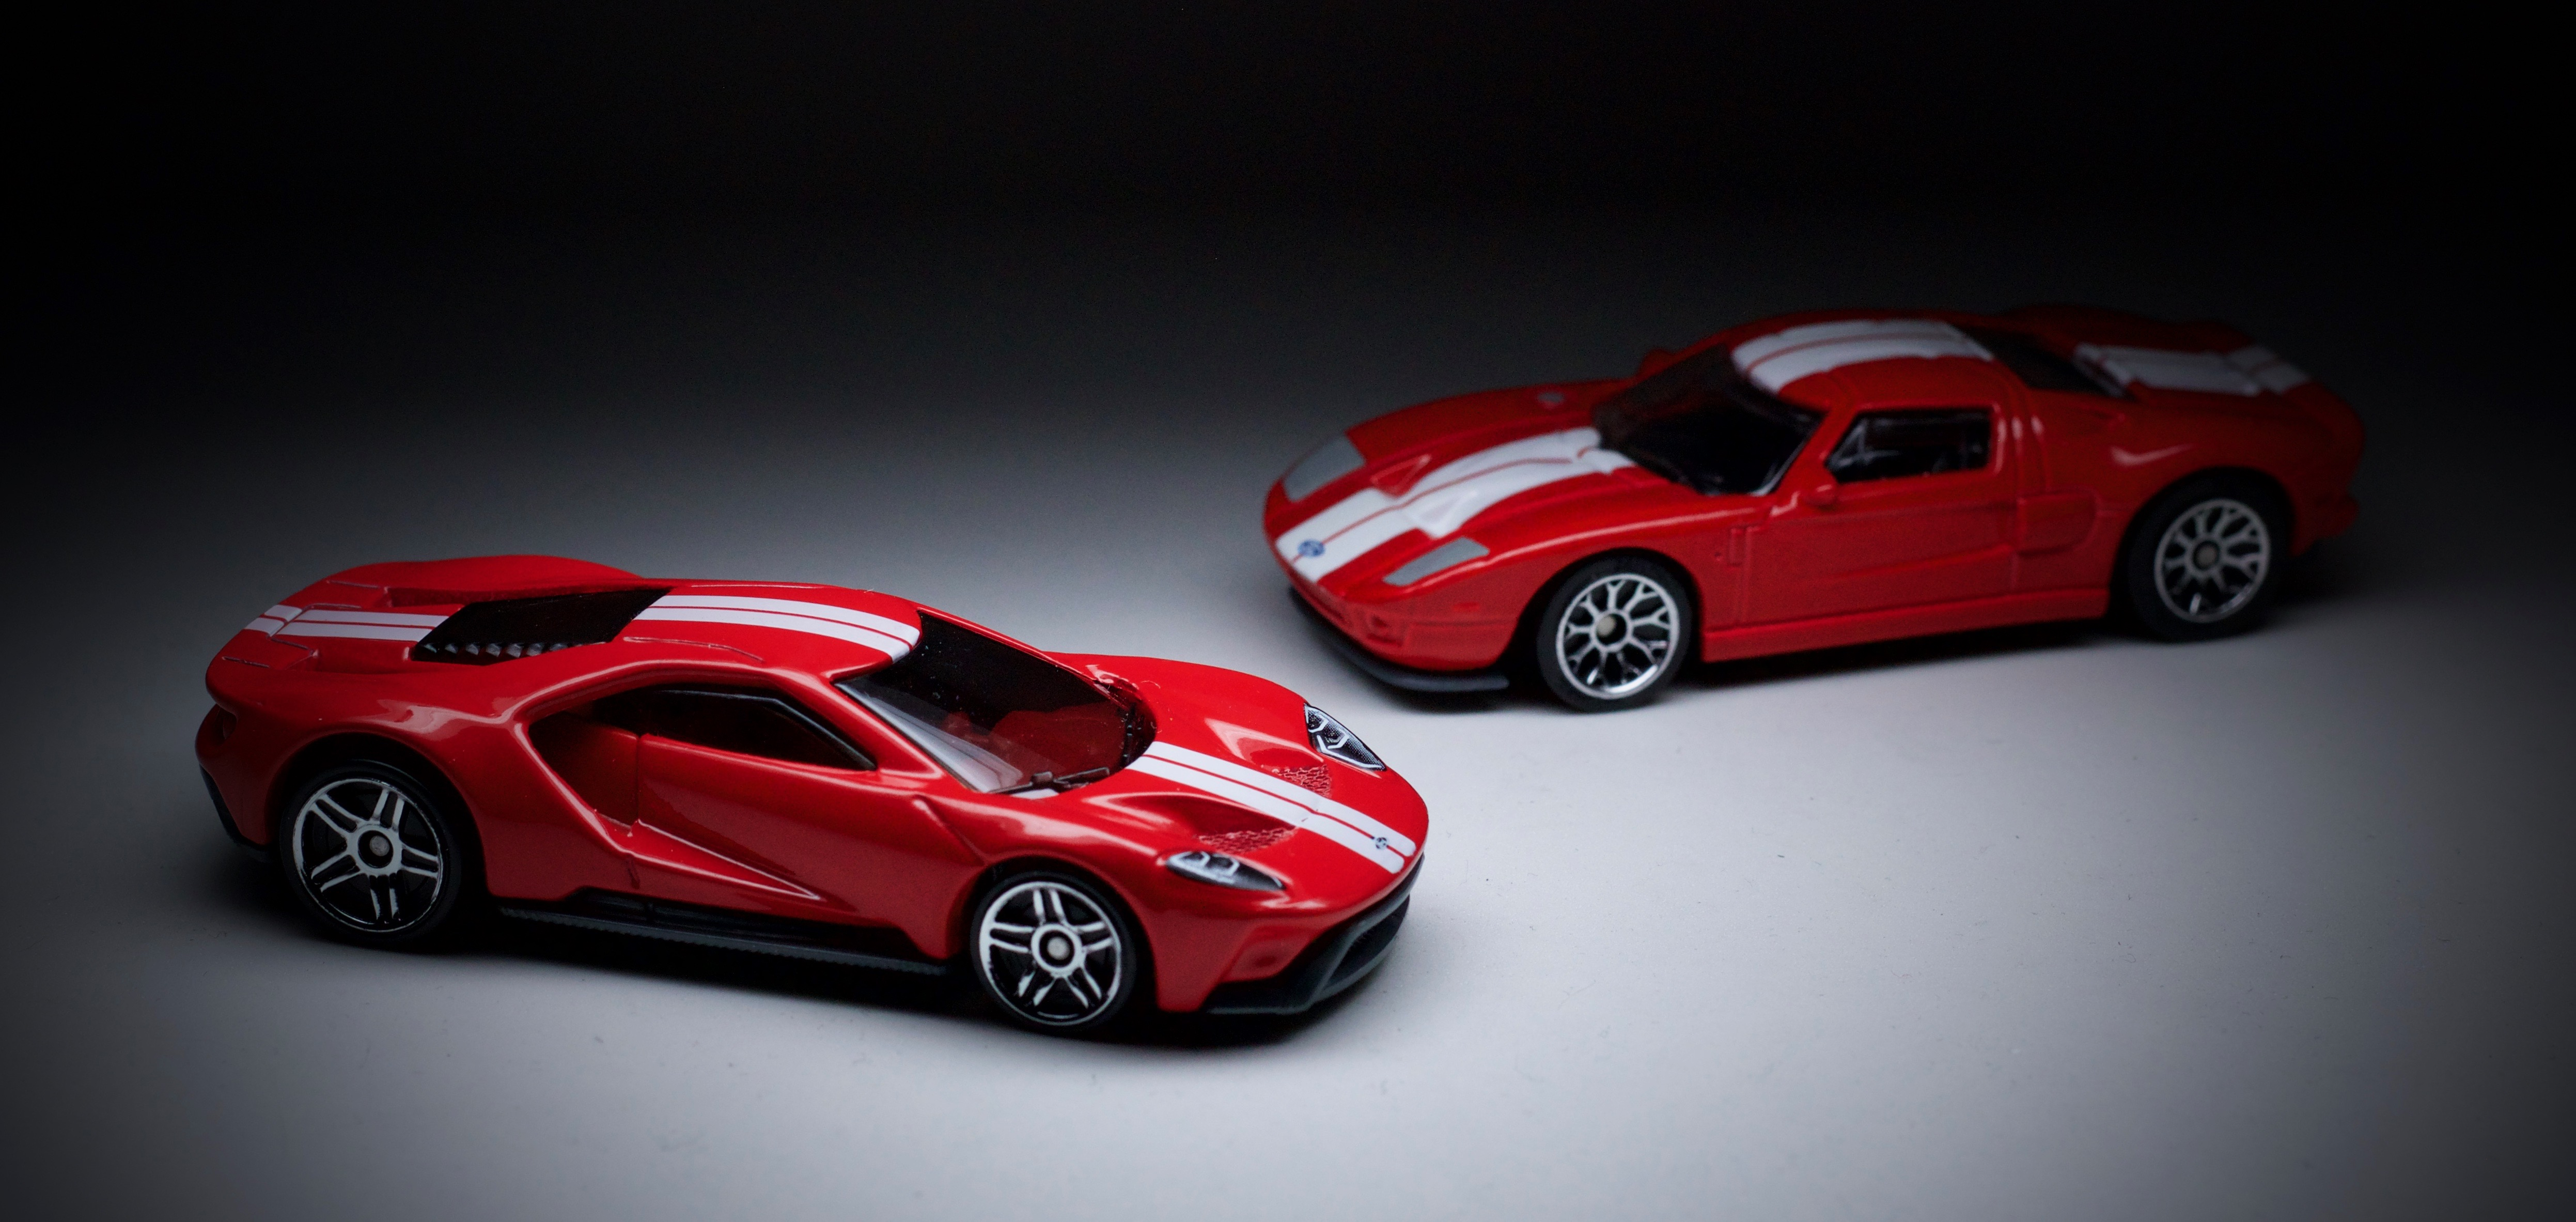 And I Am Not Just Talking About The Matchbox Release I Am Talking About The  Ford Gt In General We Cant Forget The Middle Child